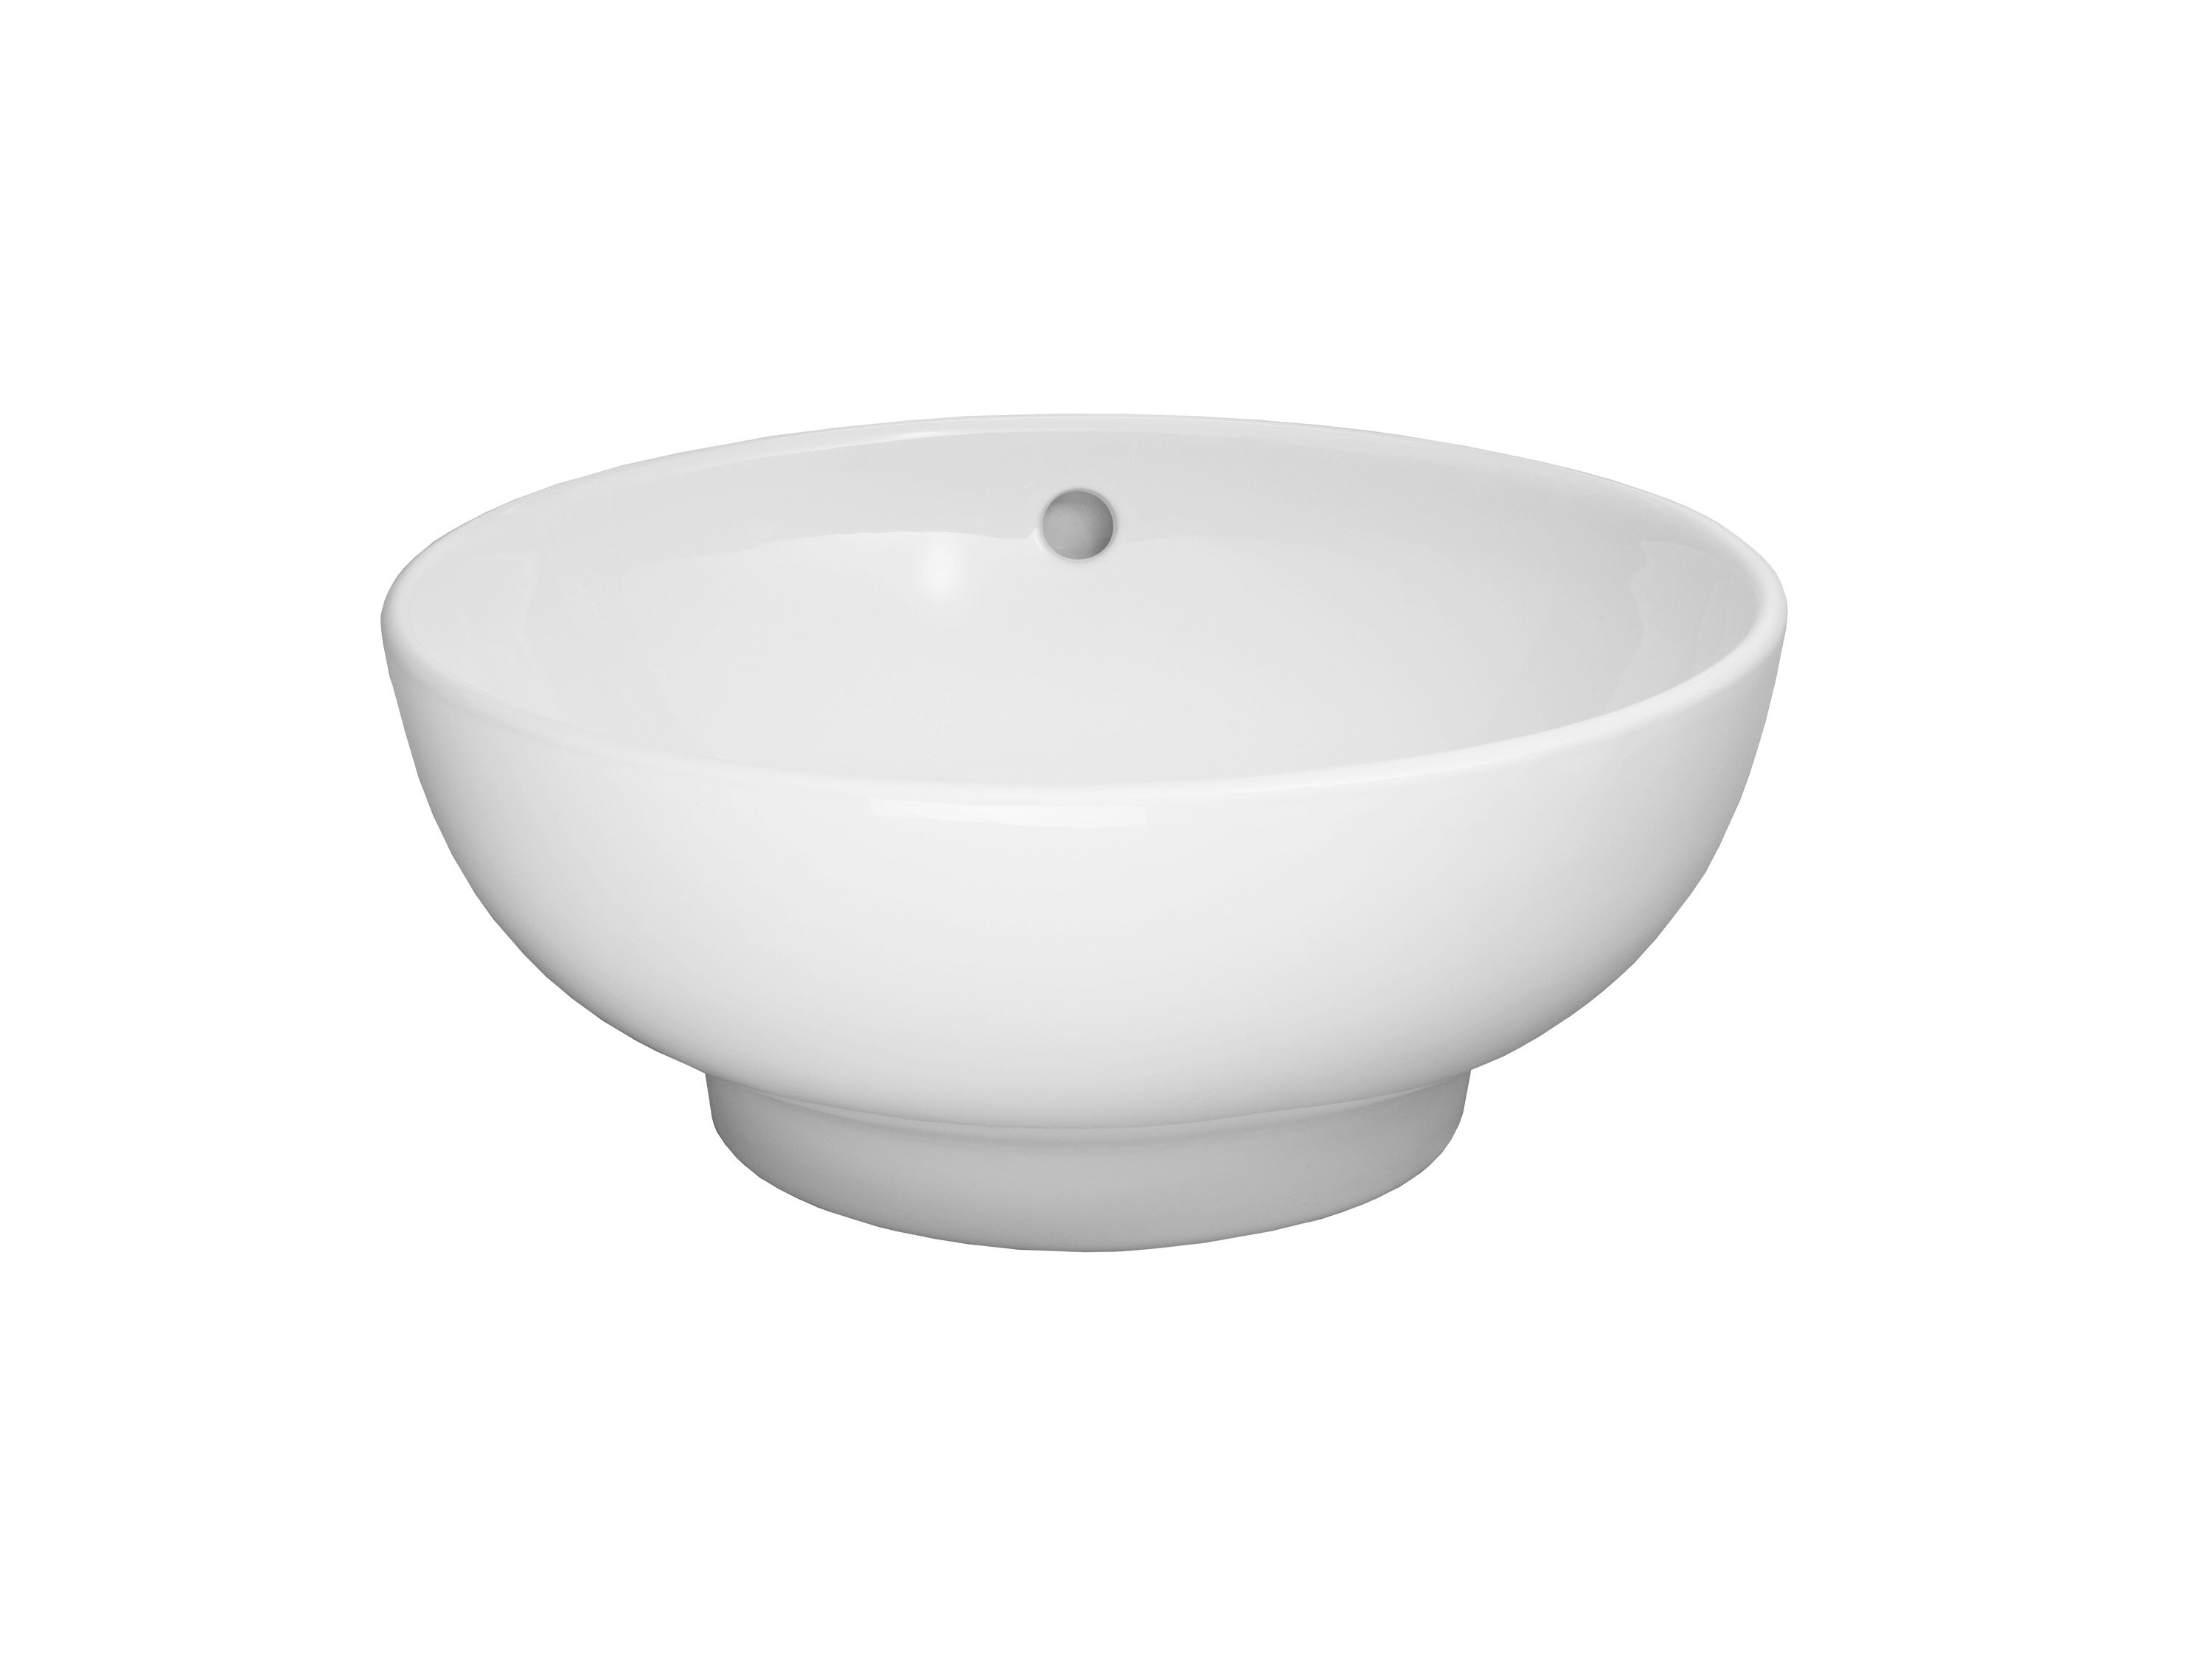 Charmant Ceramic Circular Vessel Bathroom Sink With Overflow